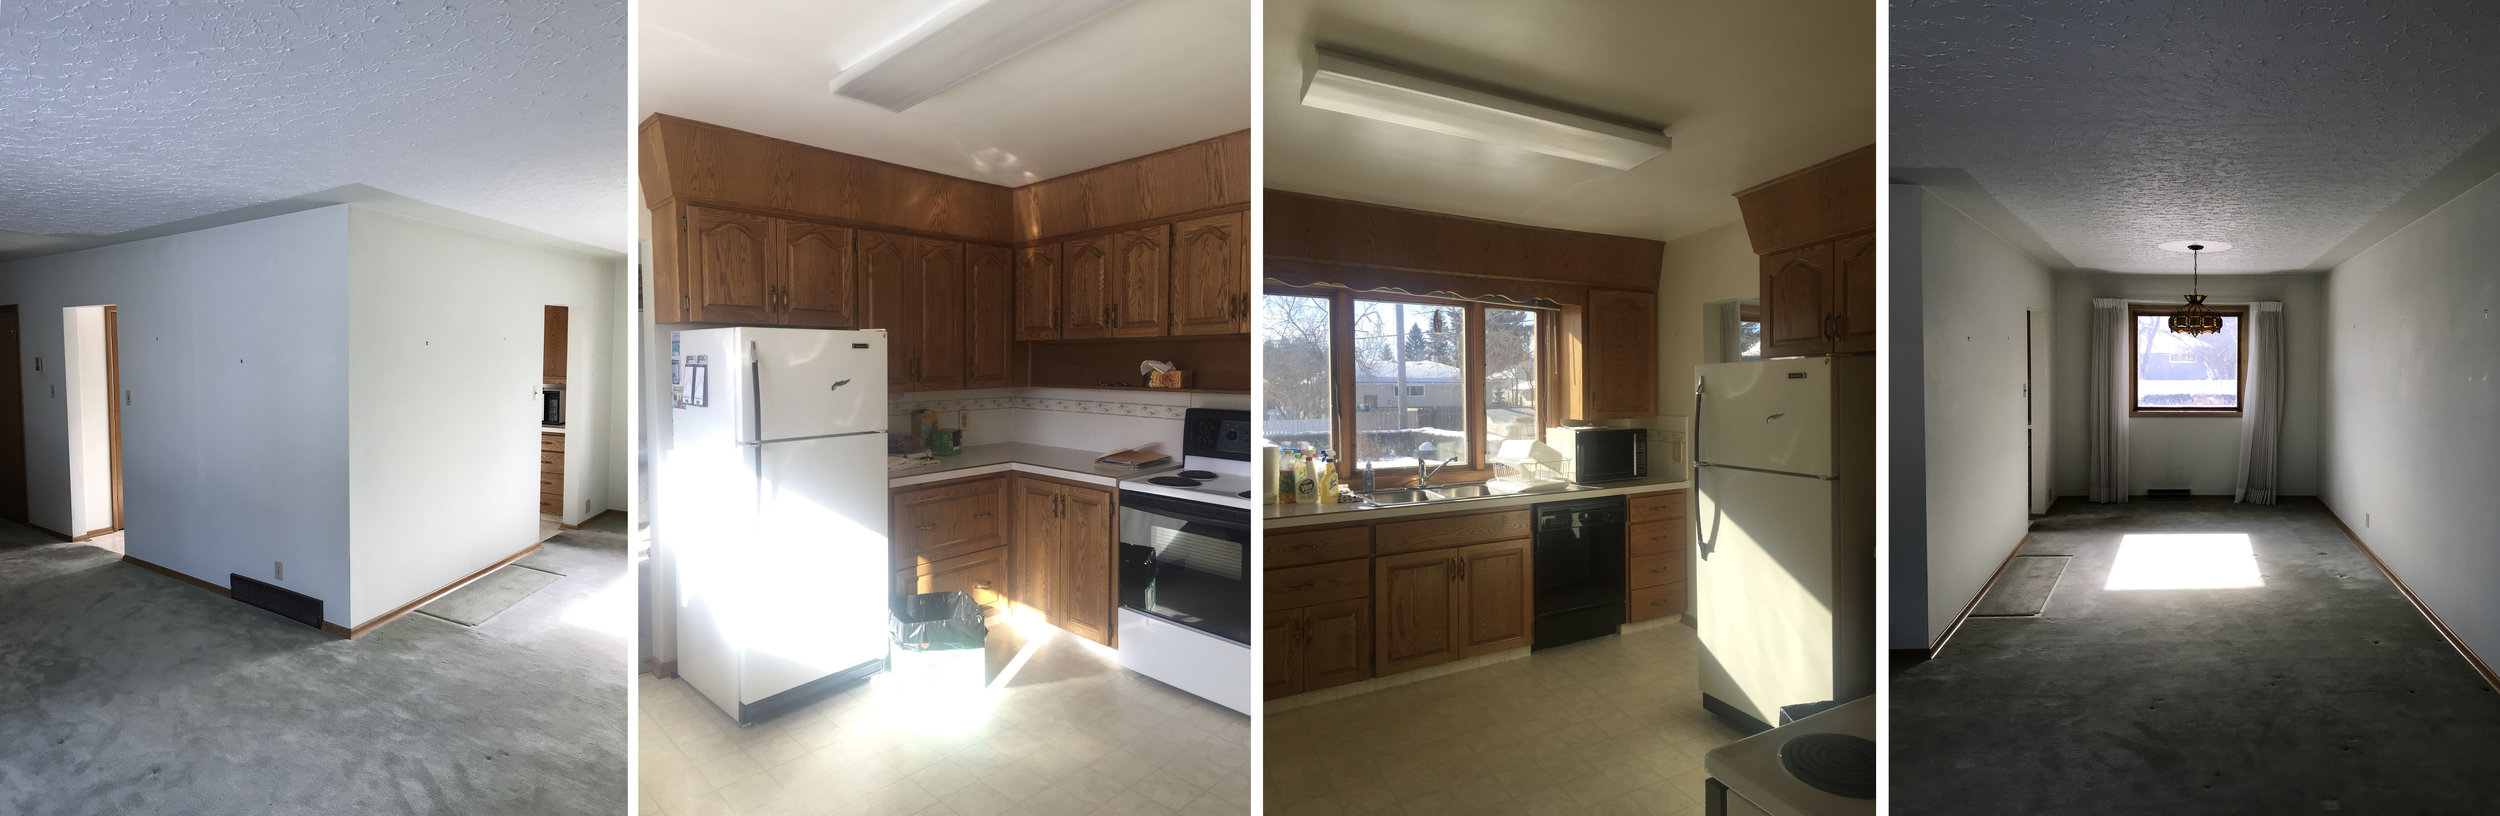 """BEFORE photos from left to right: the outside of the """"boxed-in